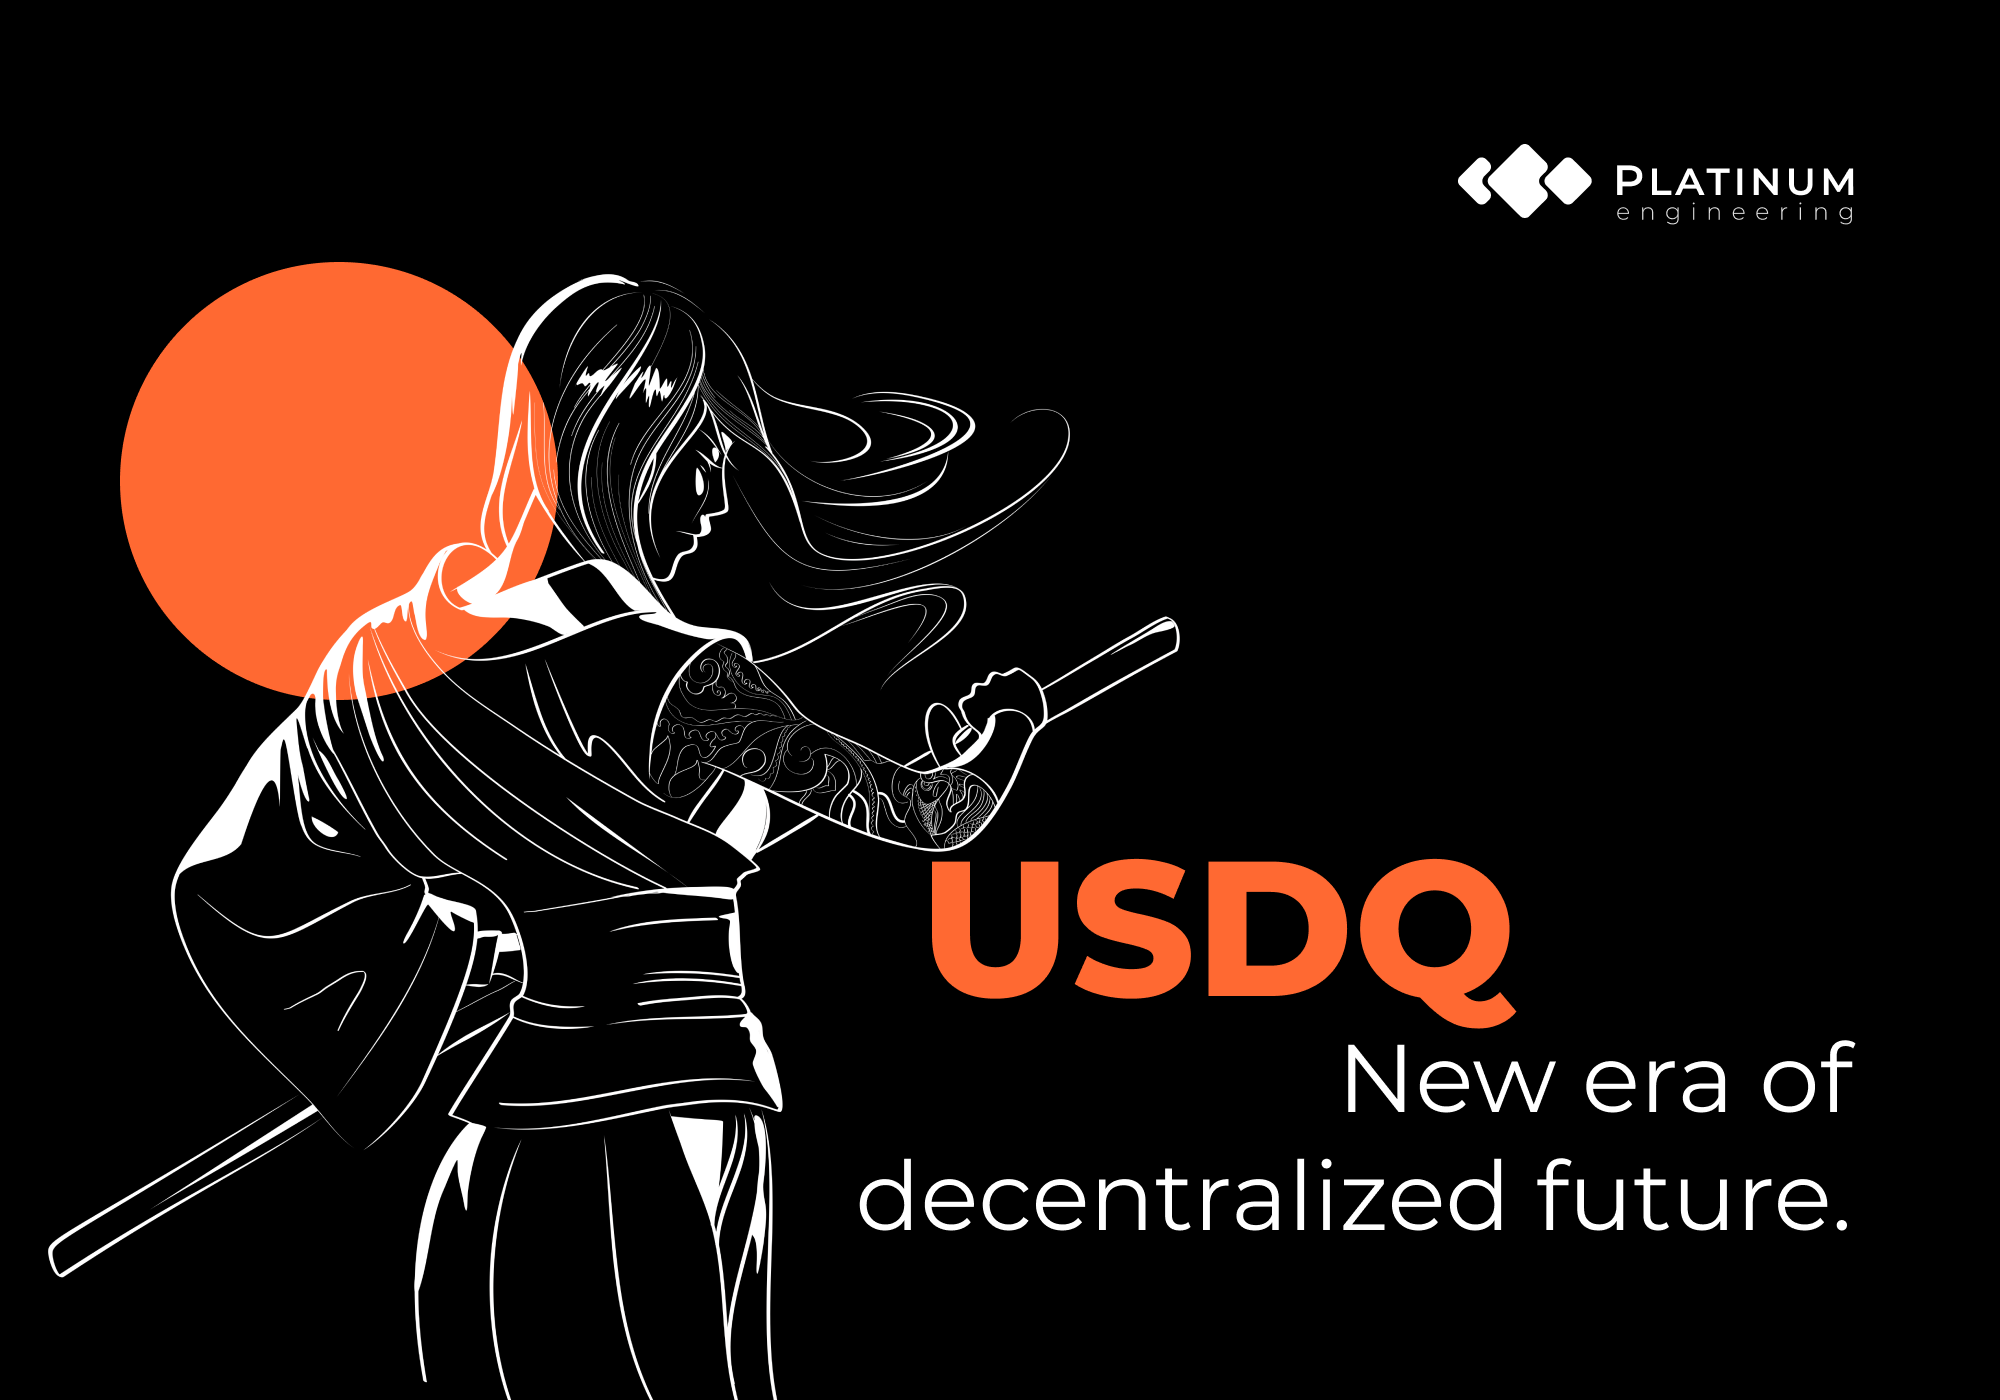 Founding an LLC with USDQ: Excellent Use Case for Stablecoin in Your Life